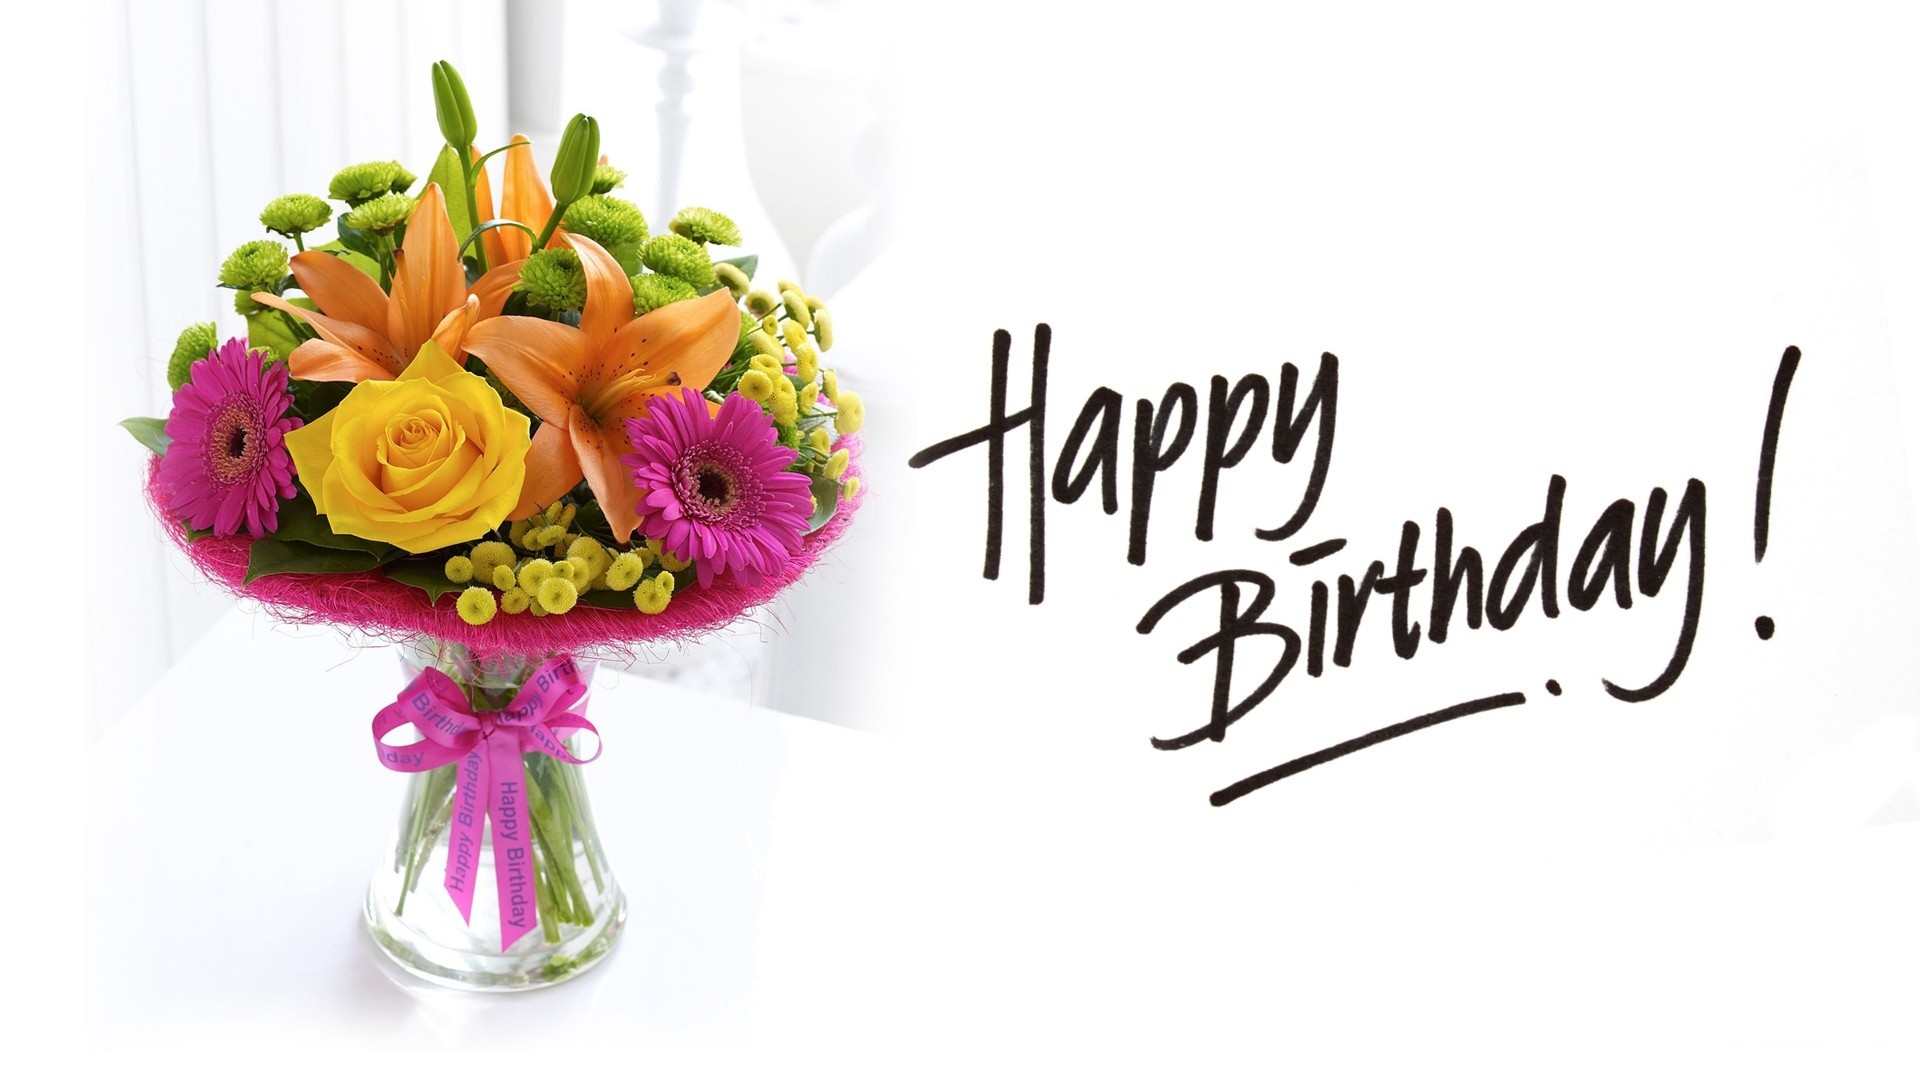 Good birthday flowers bouquet and greeting happy birthday pictures good birthday flowers bouquet and greeting izmirmasajfo